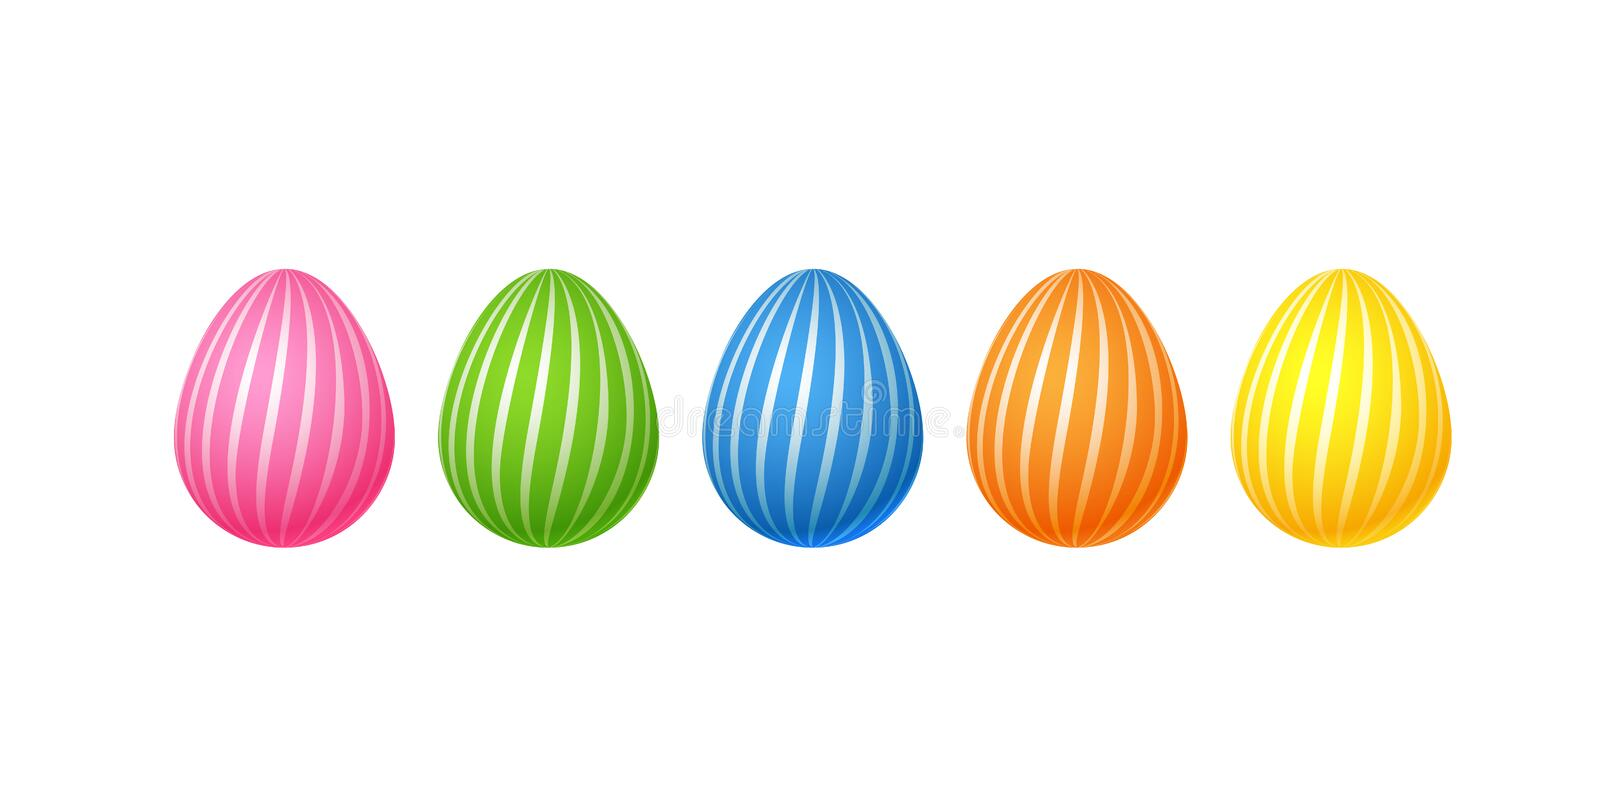 Bright colorful easter eggs Set of pink blue green orange yellow eggs with a spiral line pattern Isolated on white background vector illustration